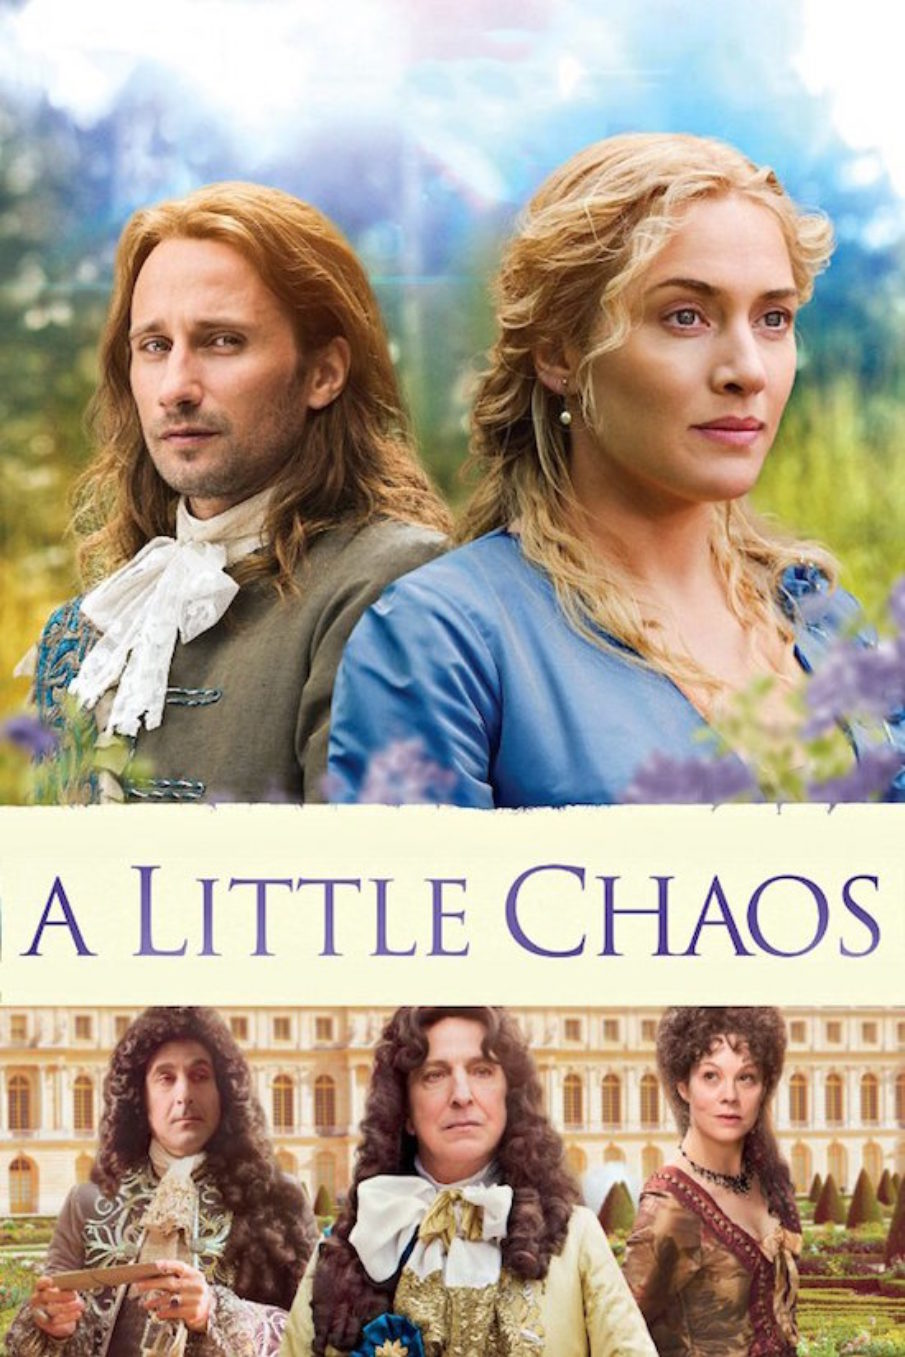 Movie Diary: A Little Chaos (2014)